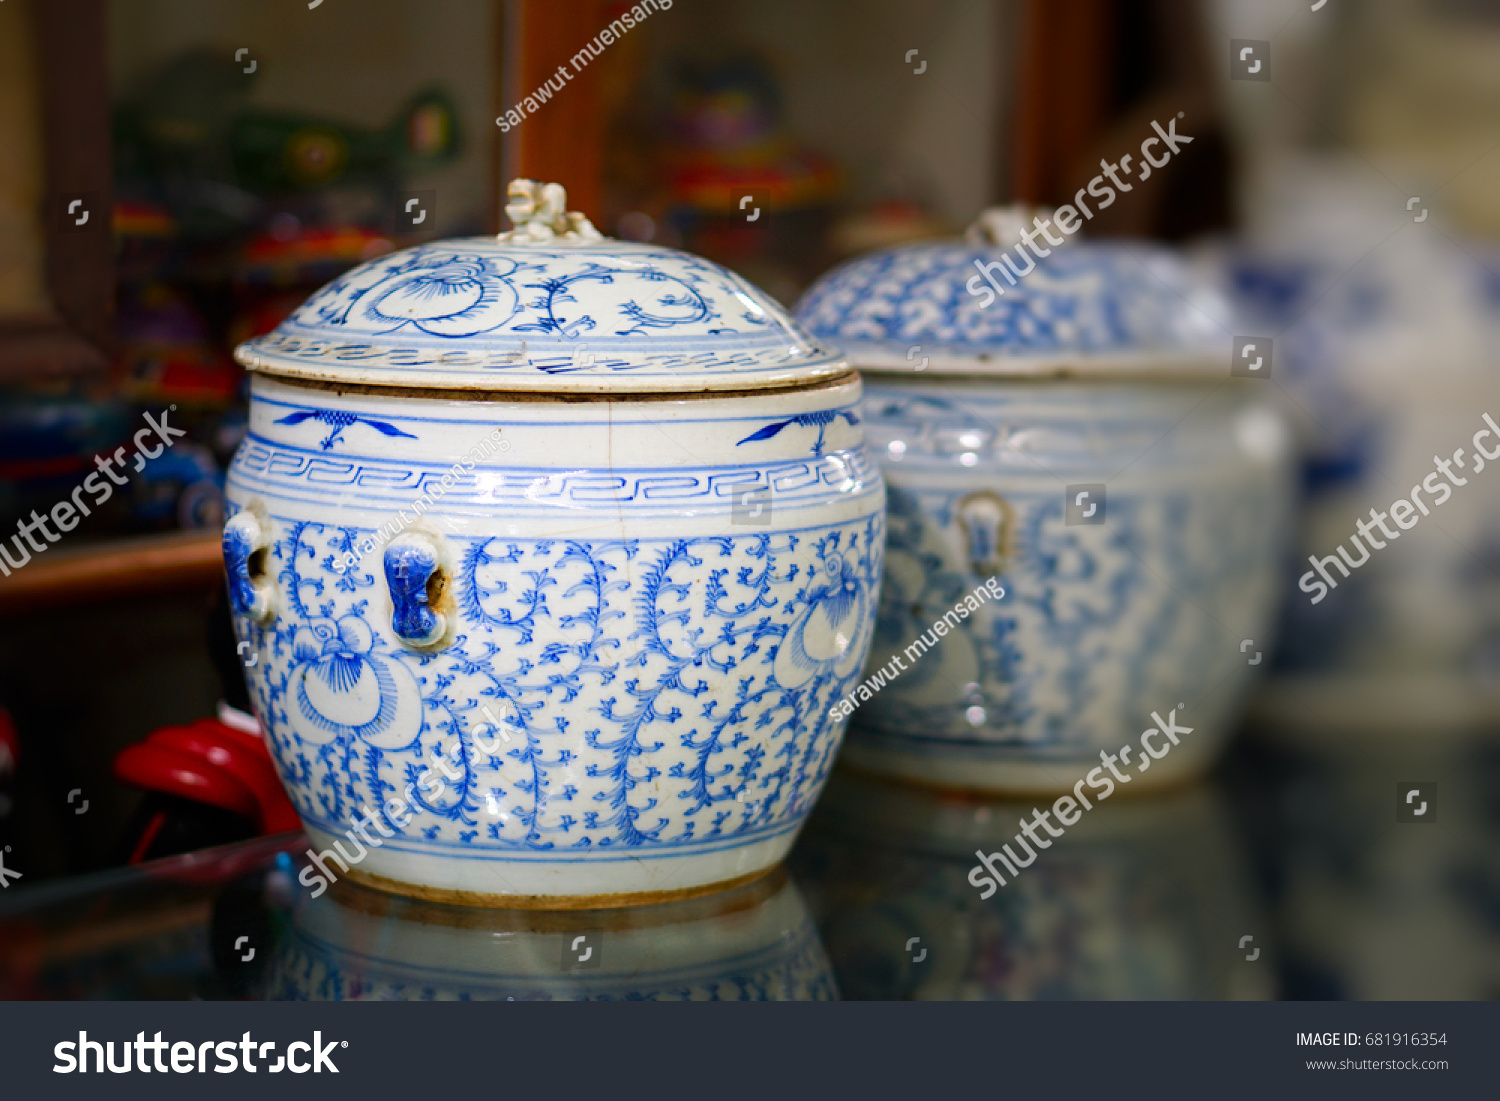 Chinese antique vase stock photo 681916354 shutterstock chinese antique vase reviewsmspy